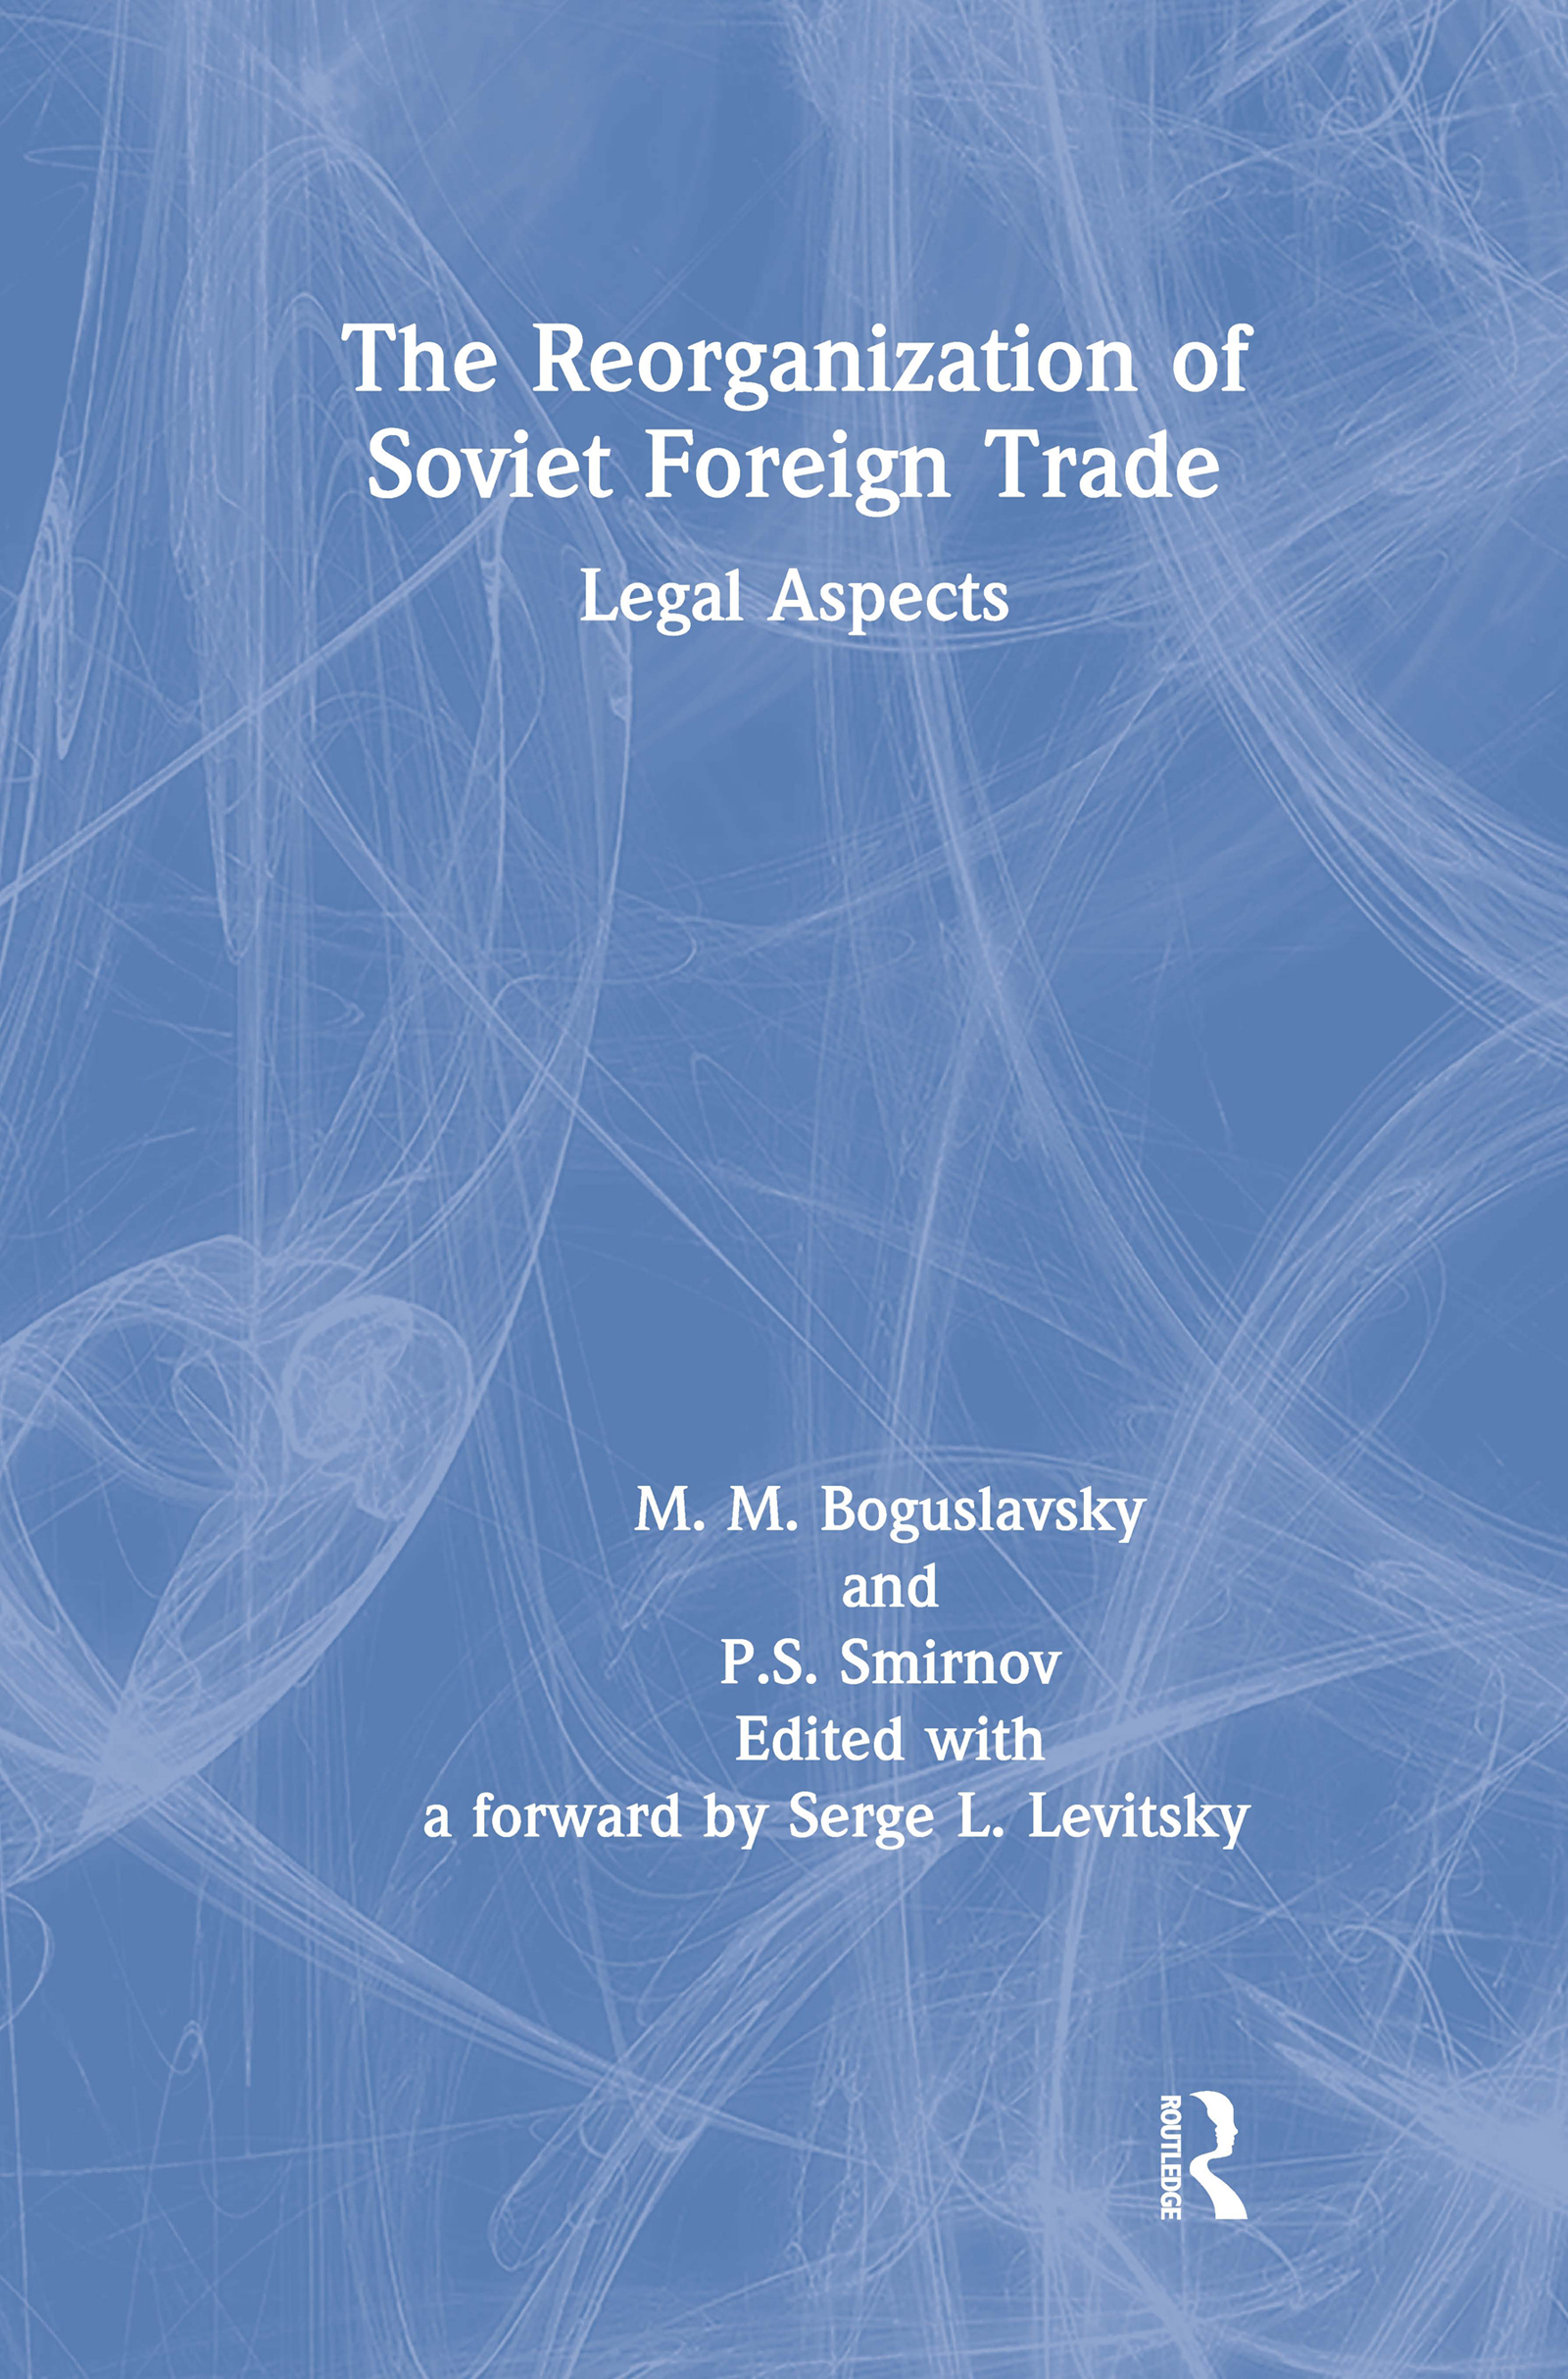 The Reorganization of Soviet Foreign Trade: Legal Aspects